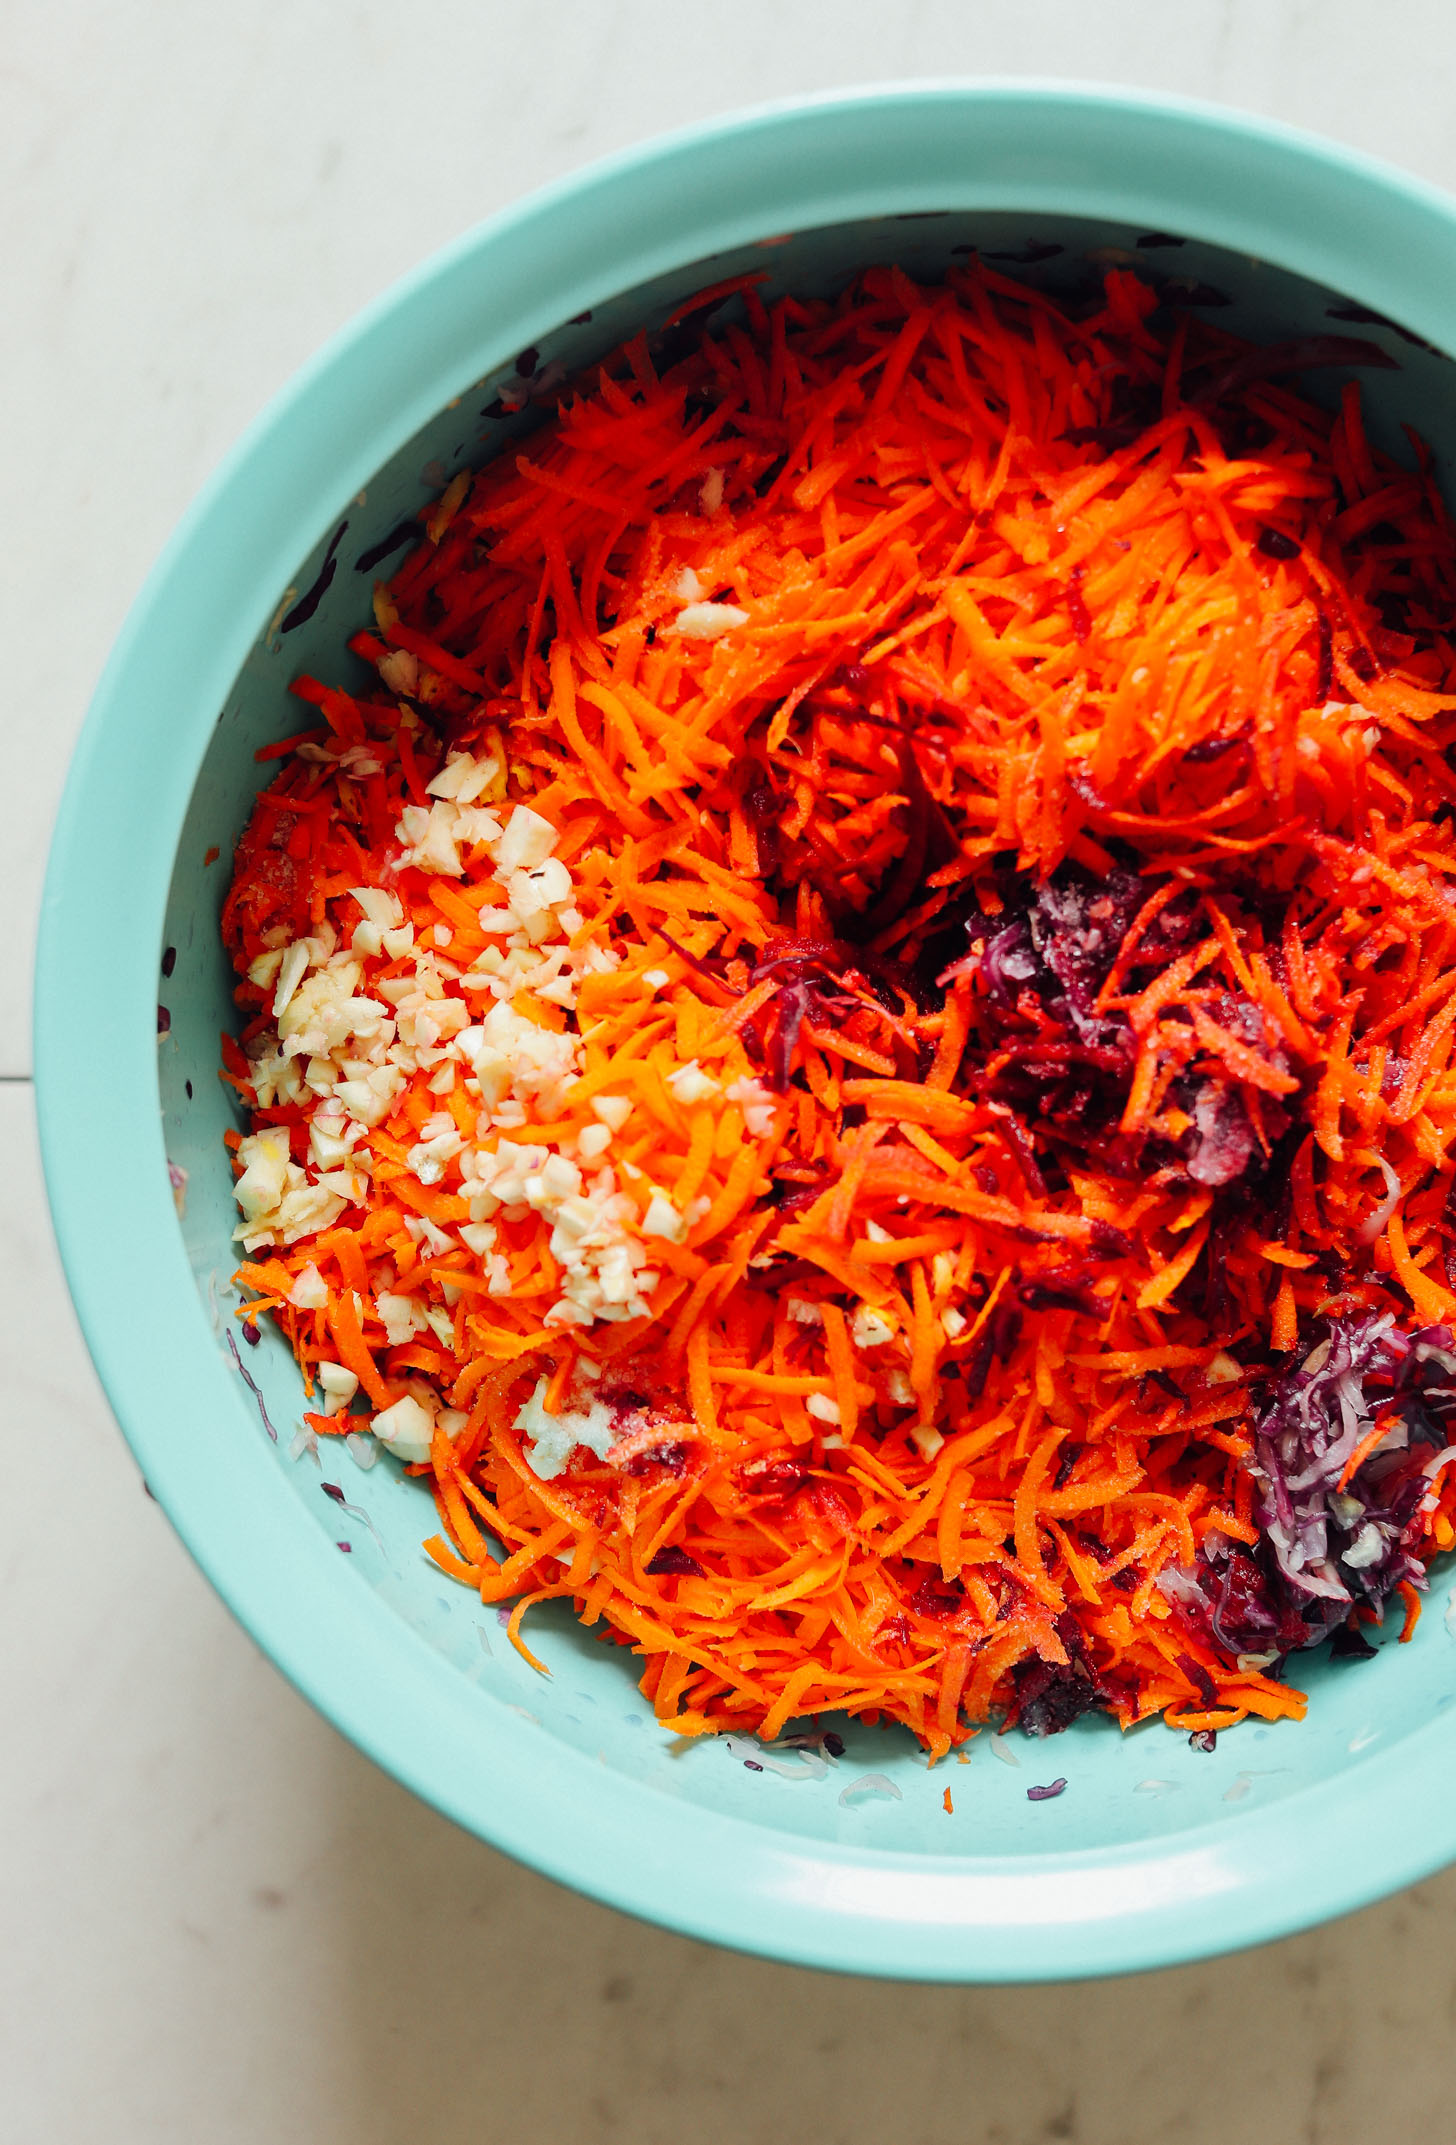 Big bowl of massaged cabbage, shredded carrots, and chopped garlic